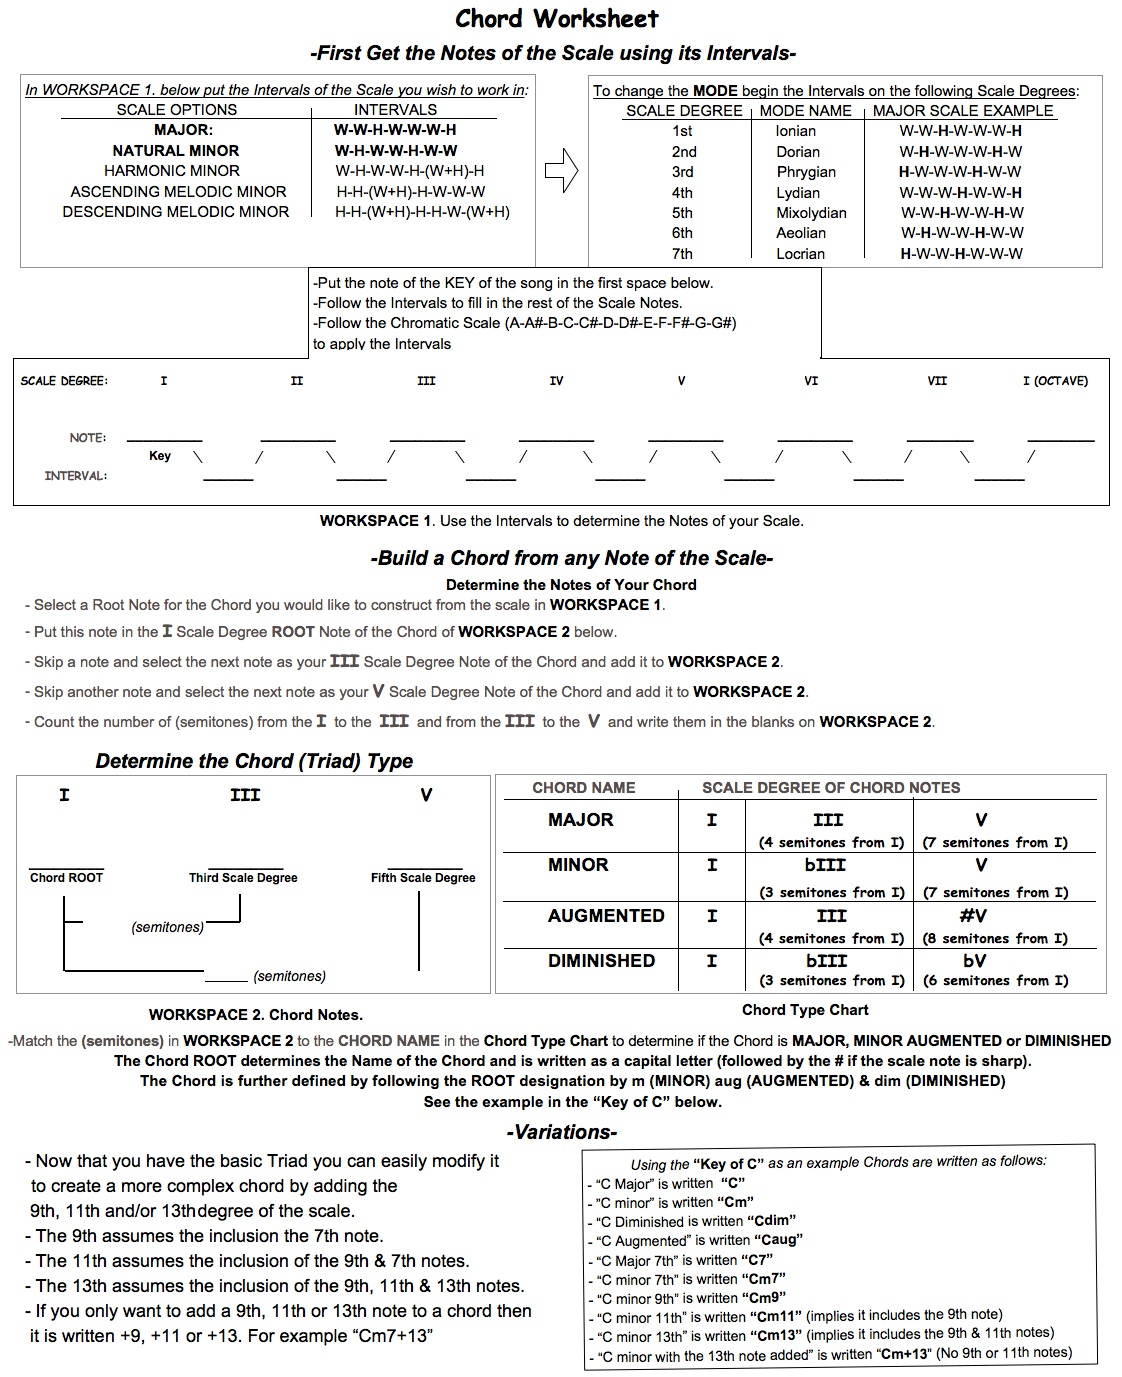 Chord Worksheet